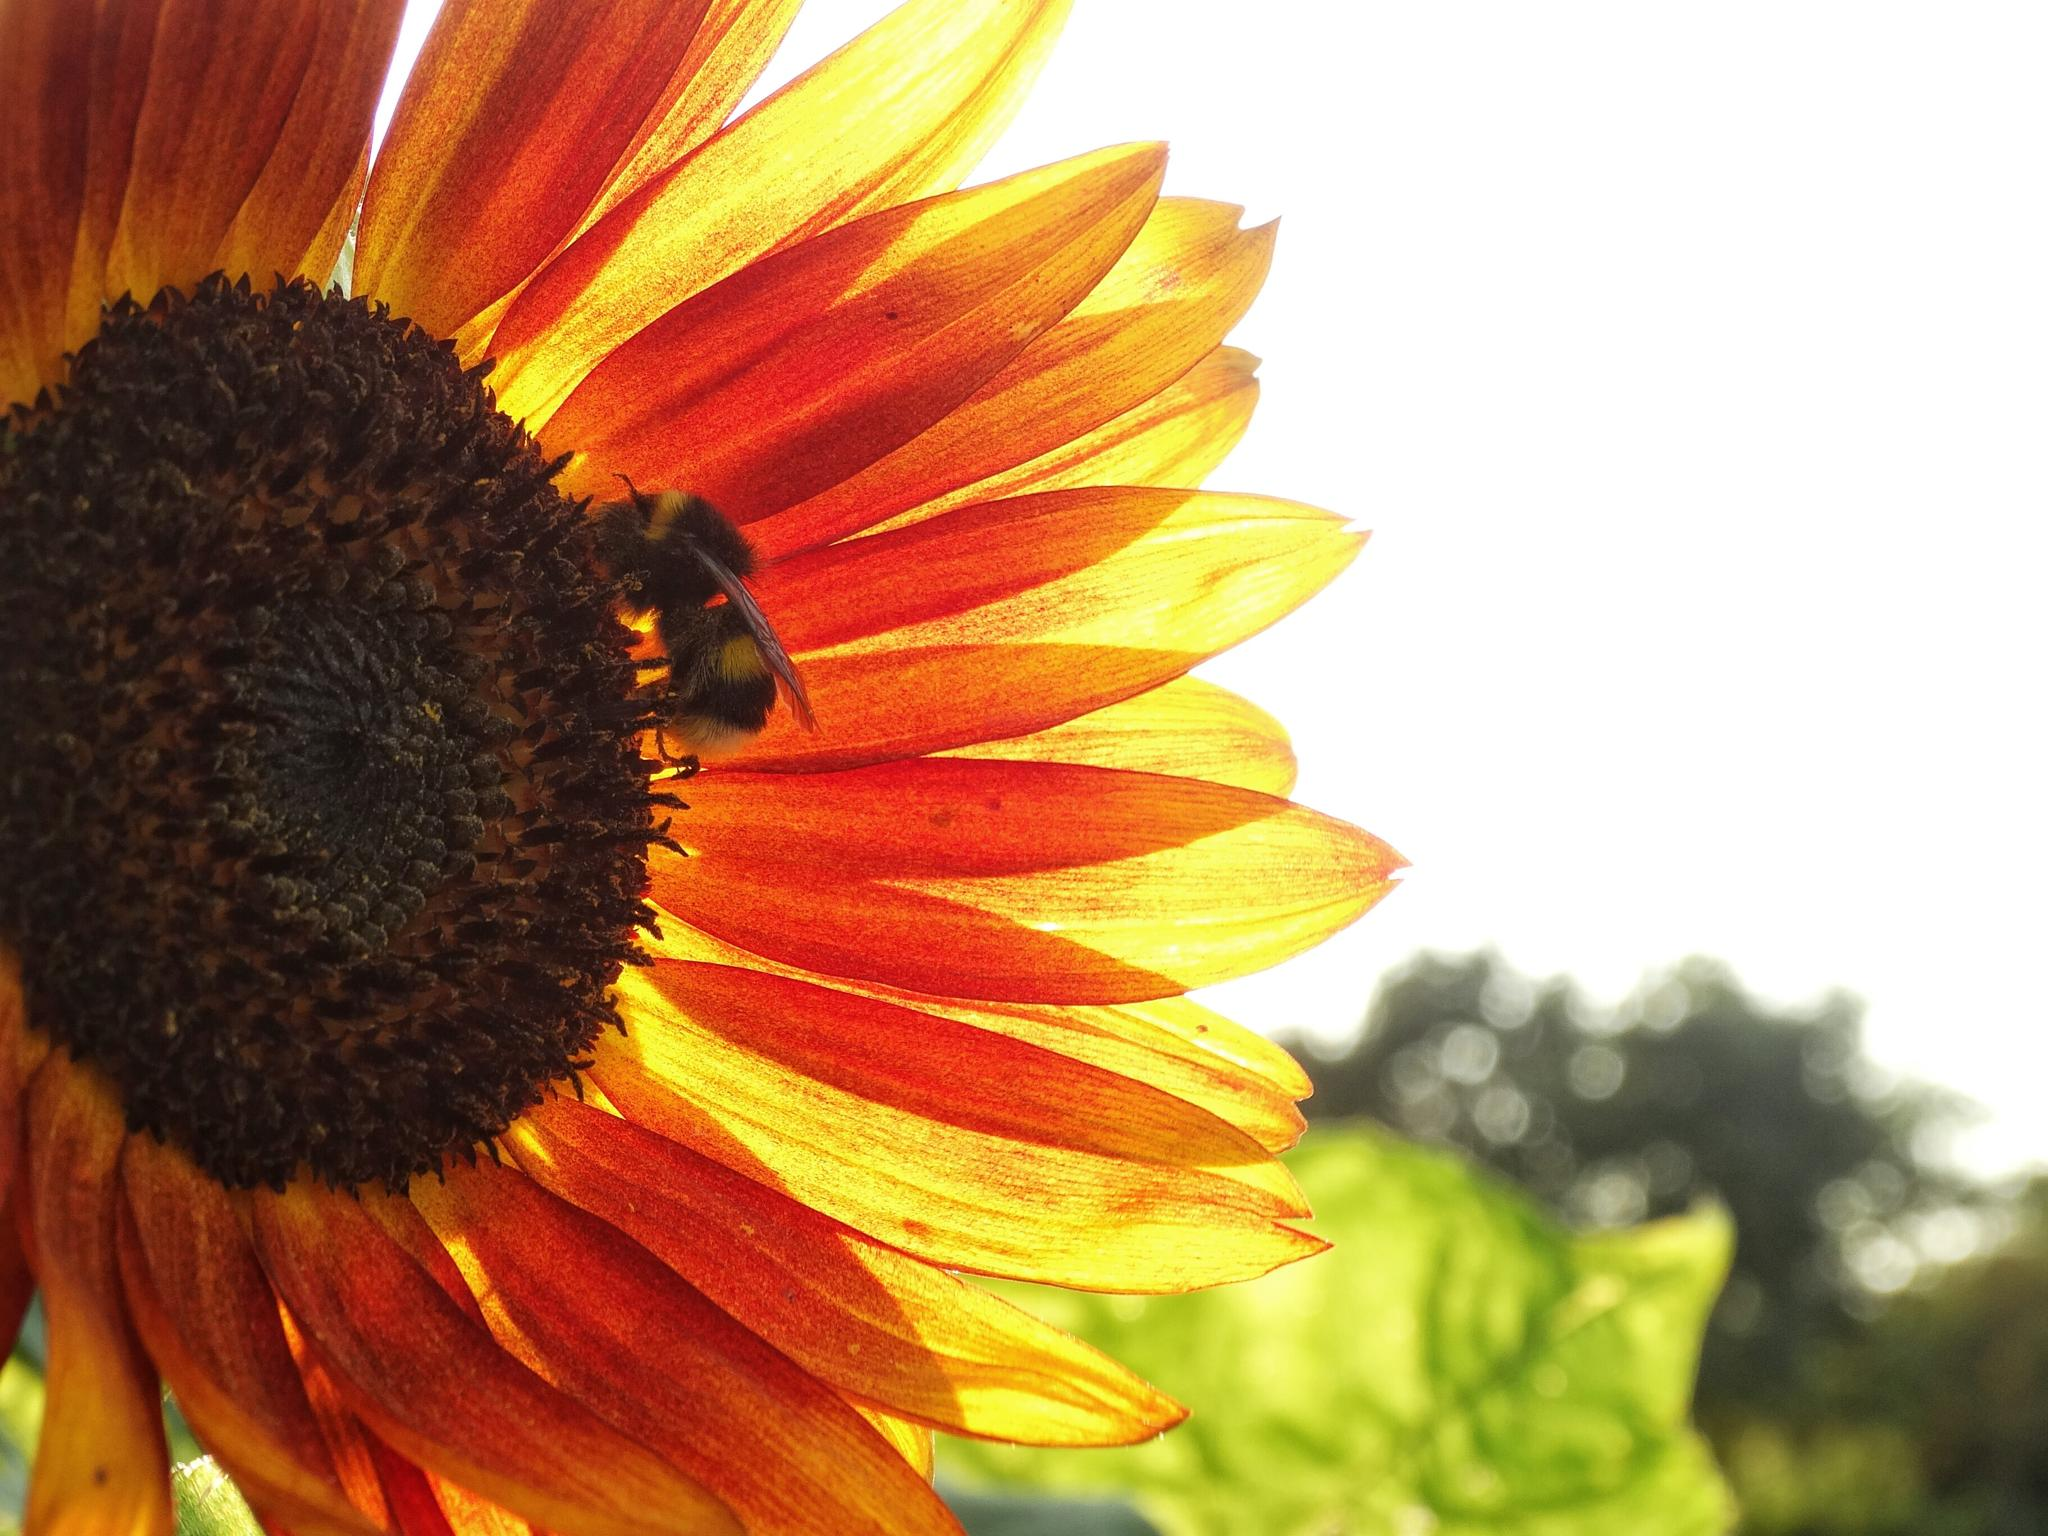 Sunflower at sunset by Annie_AAA